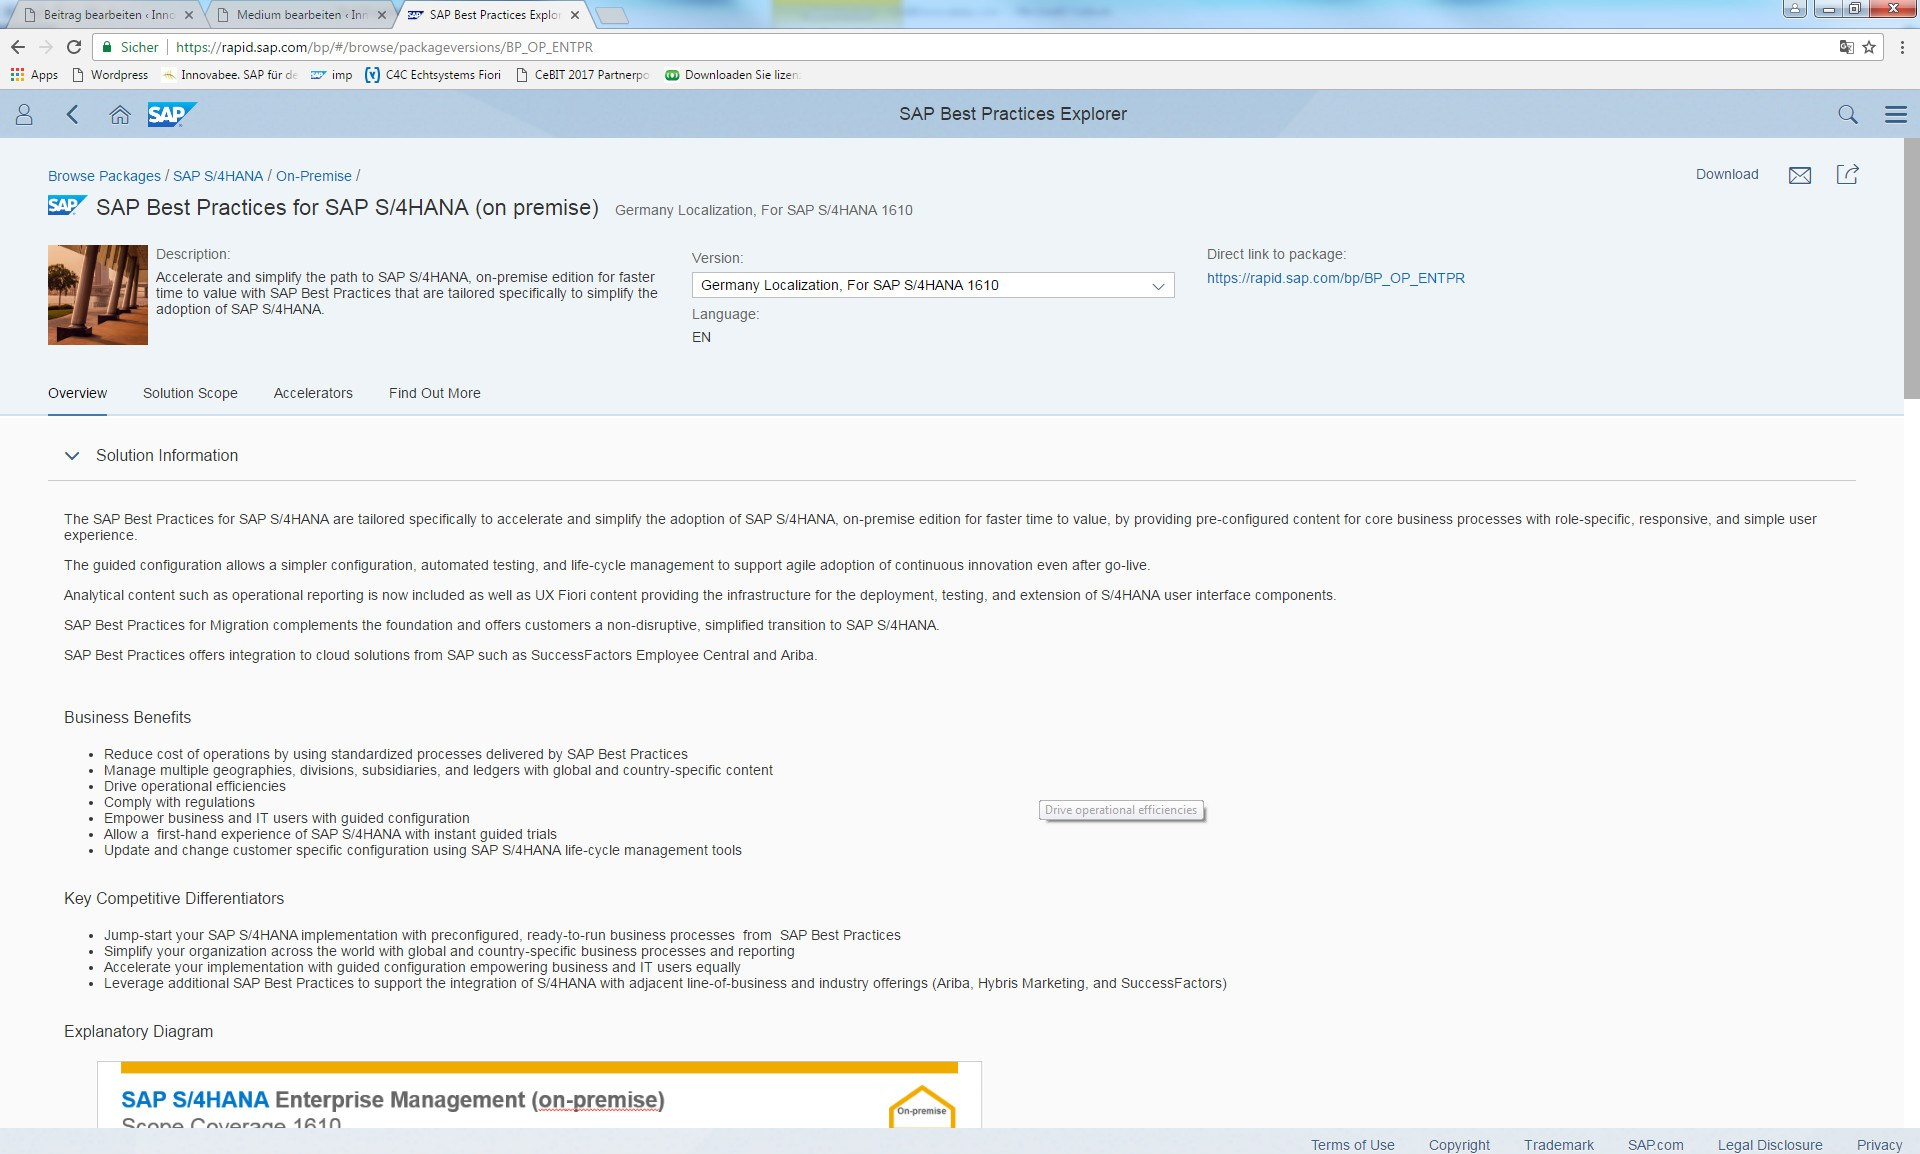 Blog Screen Best Practices Explorer Lösungsinformation S4HANA - Best Practices für SAP S/4HANA finden und nutzen – mit dem SAP Best Practices Explorer